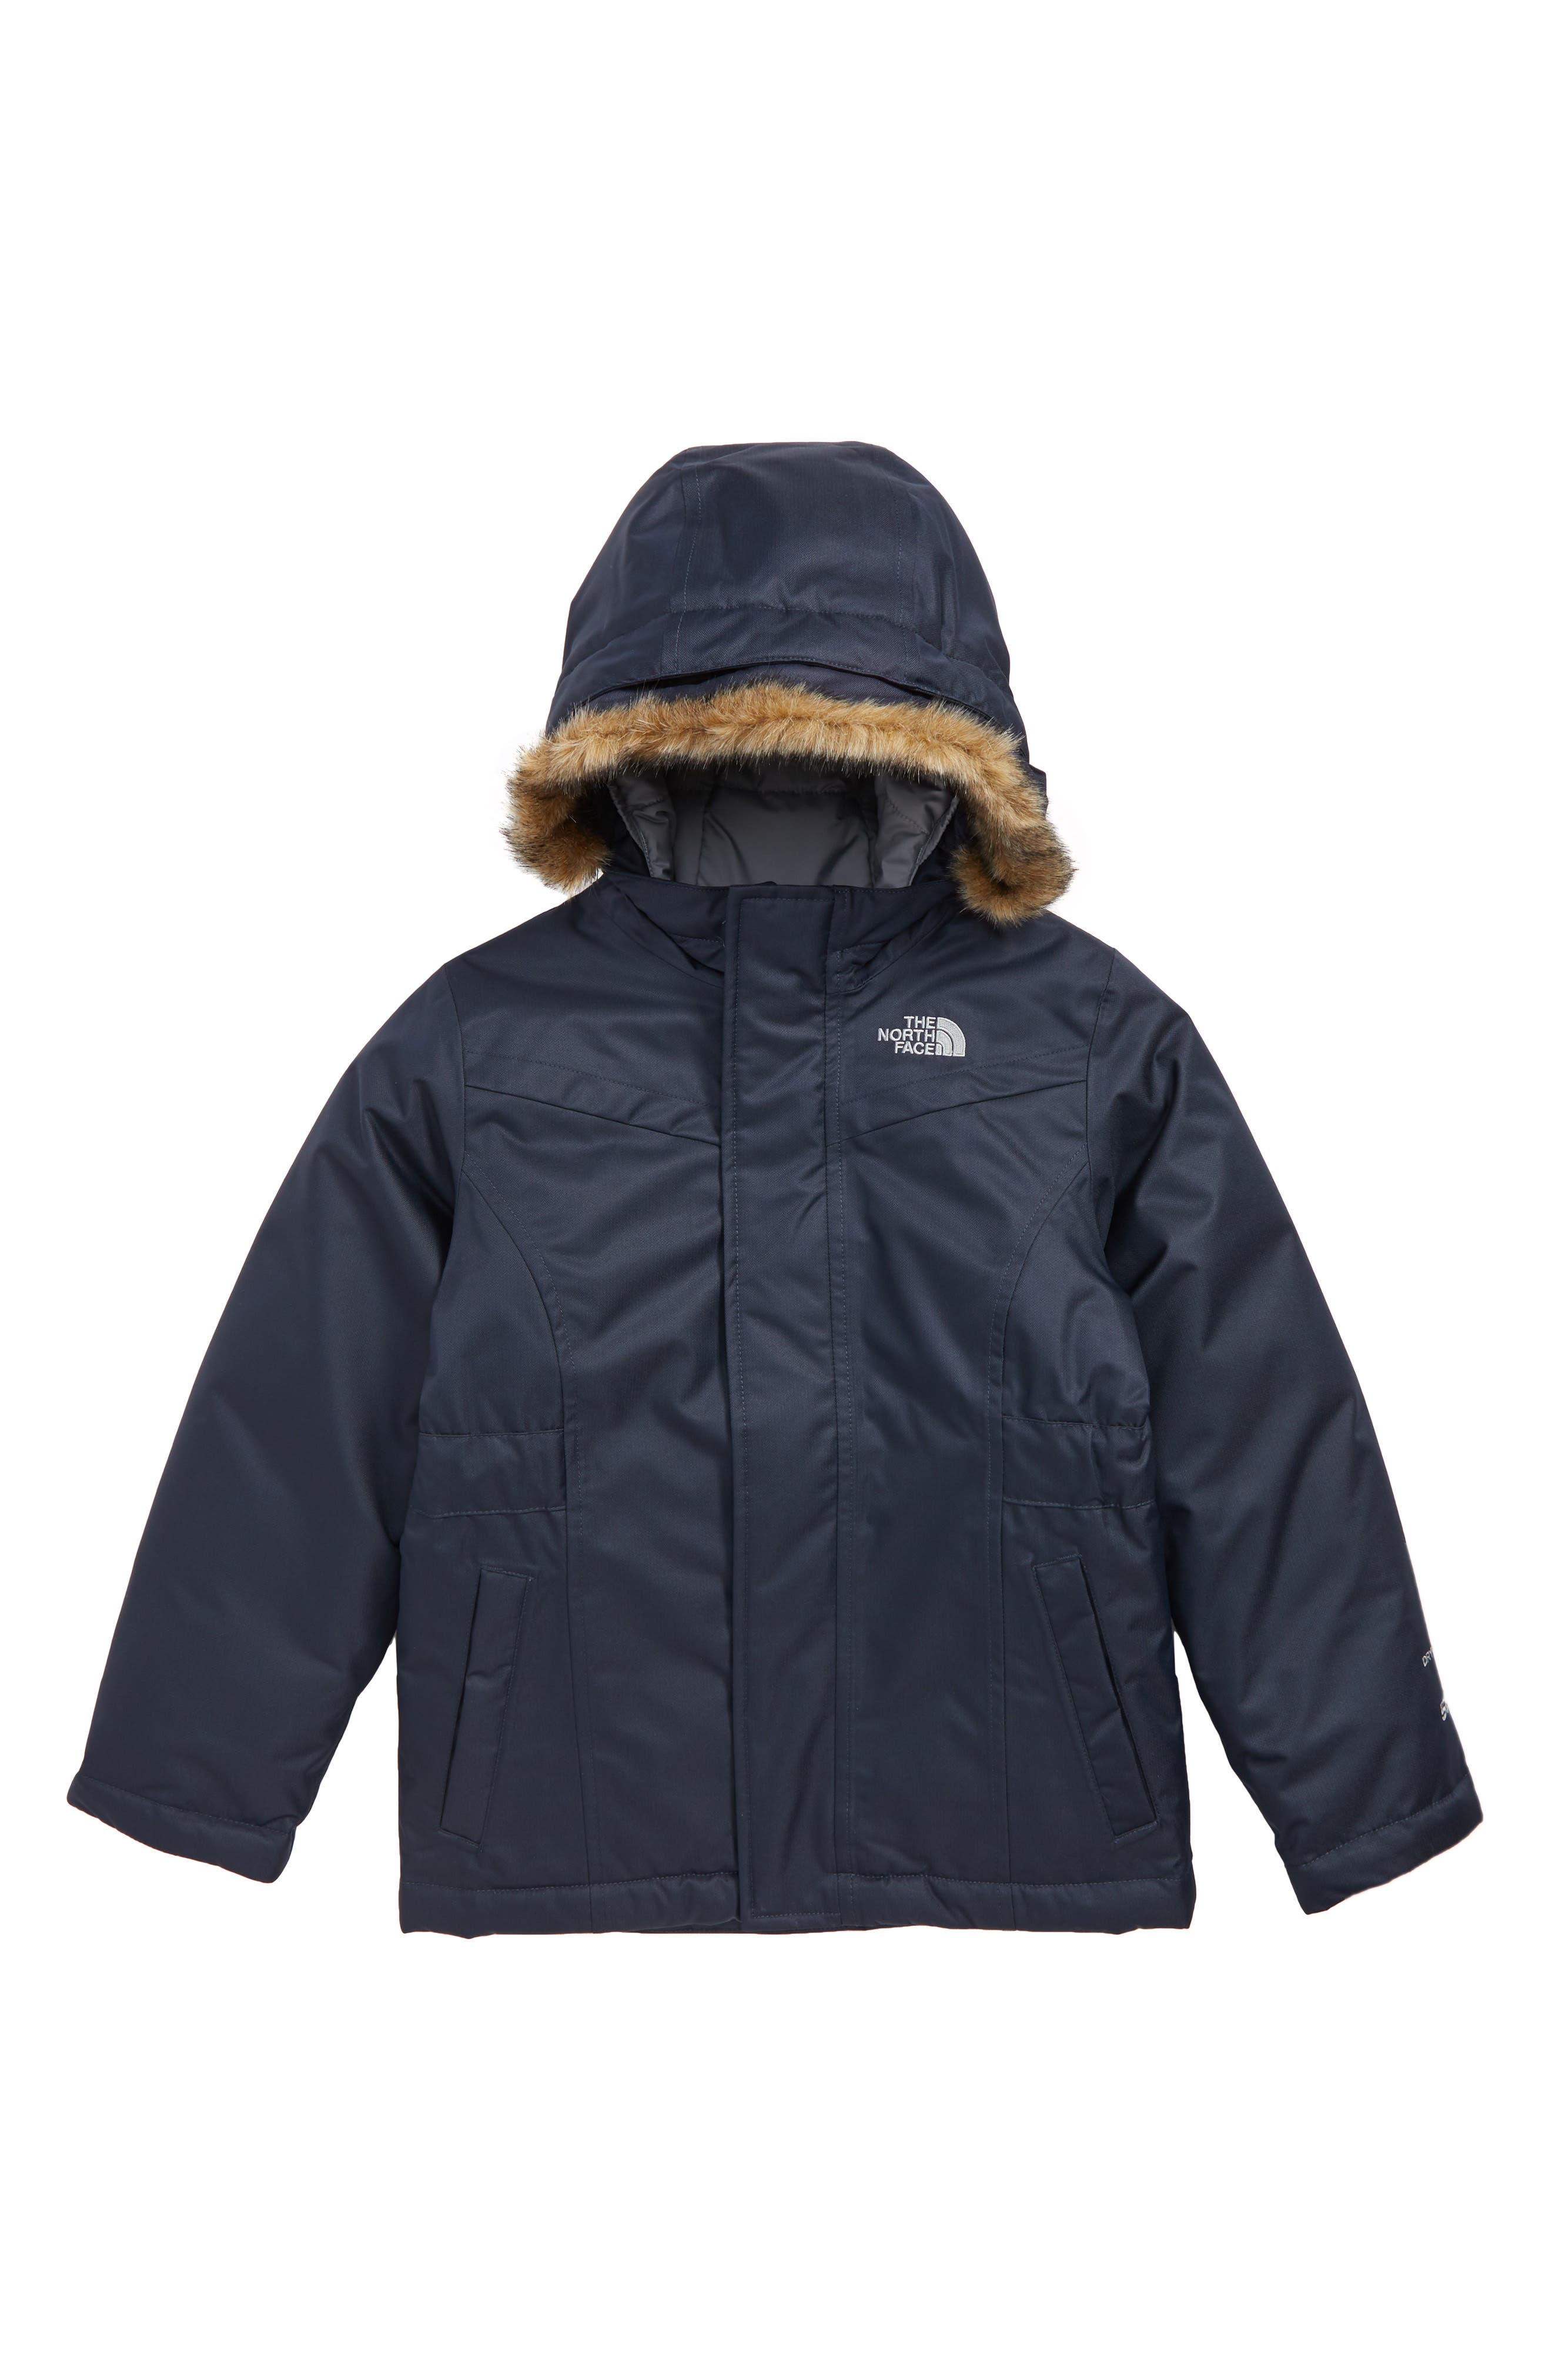 Greenland Waterproof 550-Fill-Power Down Jacket with Faux Fur Trim,                             Main thumbnail 1, color,                             URBAN NAVY